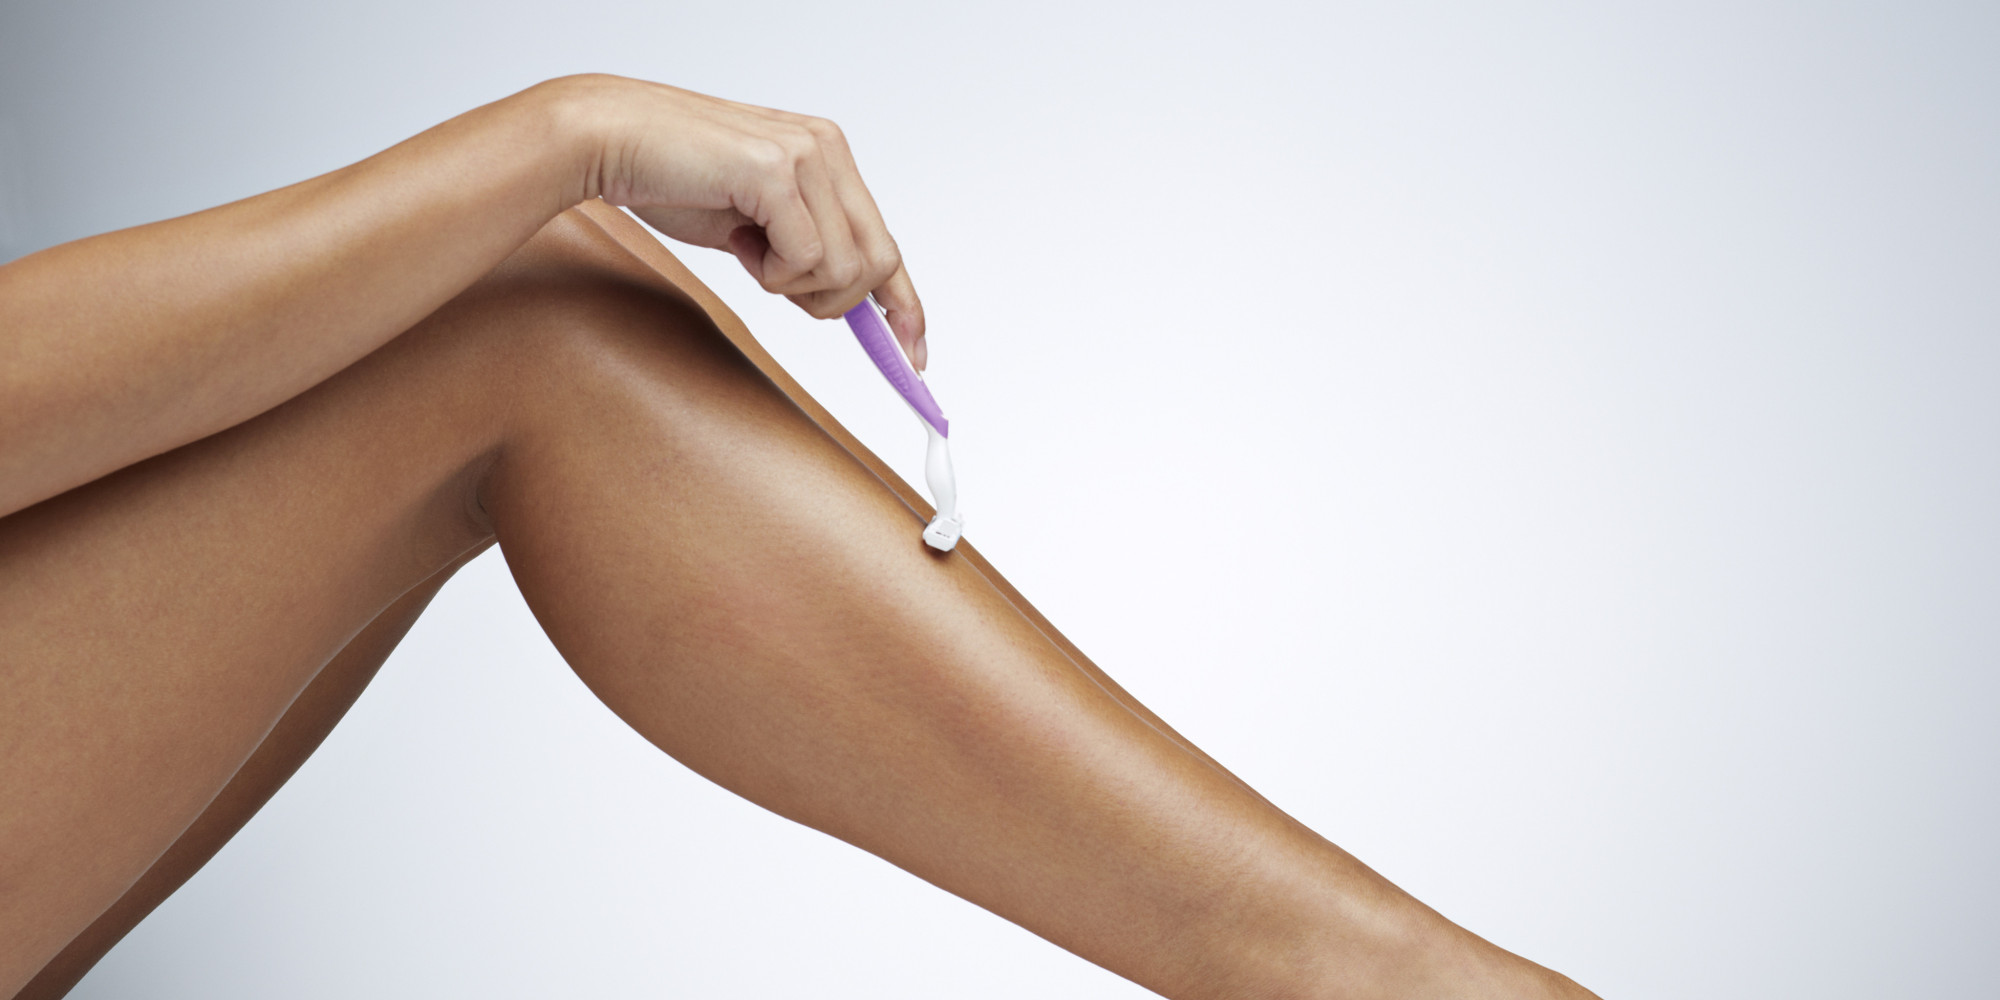 Close-up of woman shaving her leg